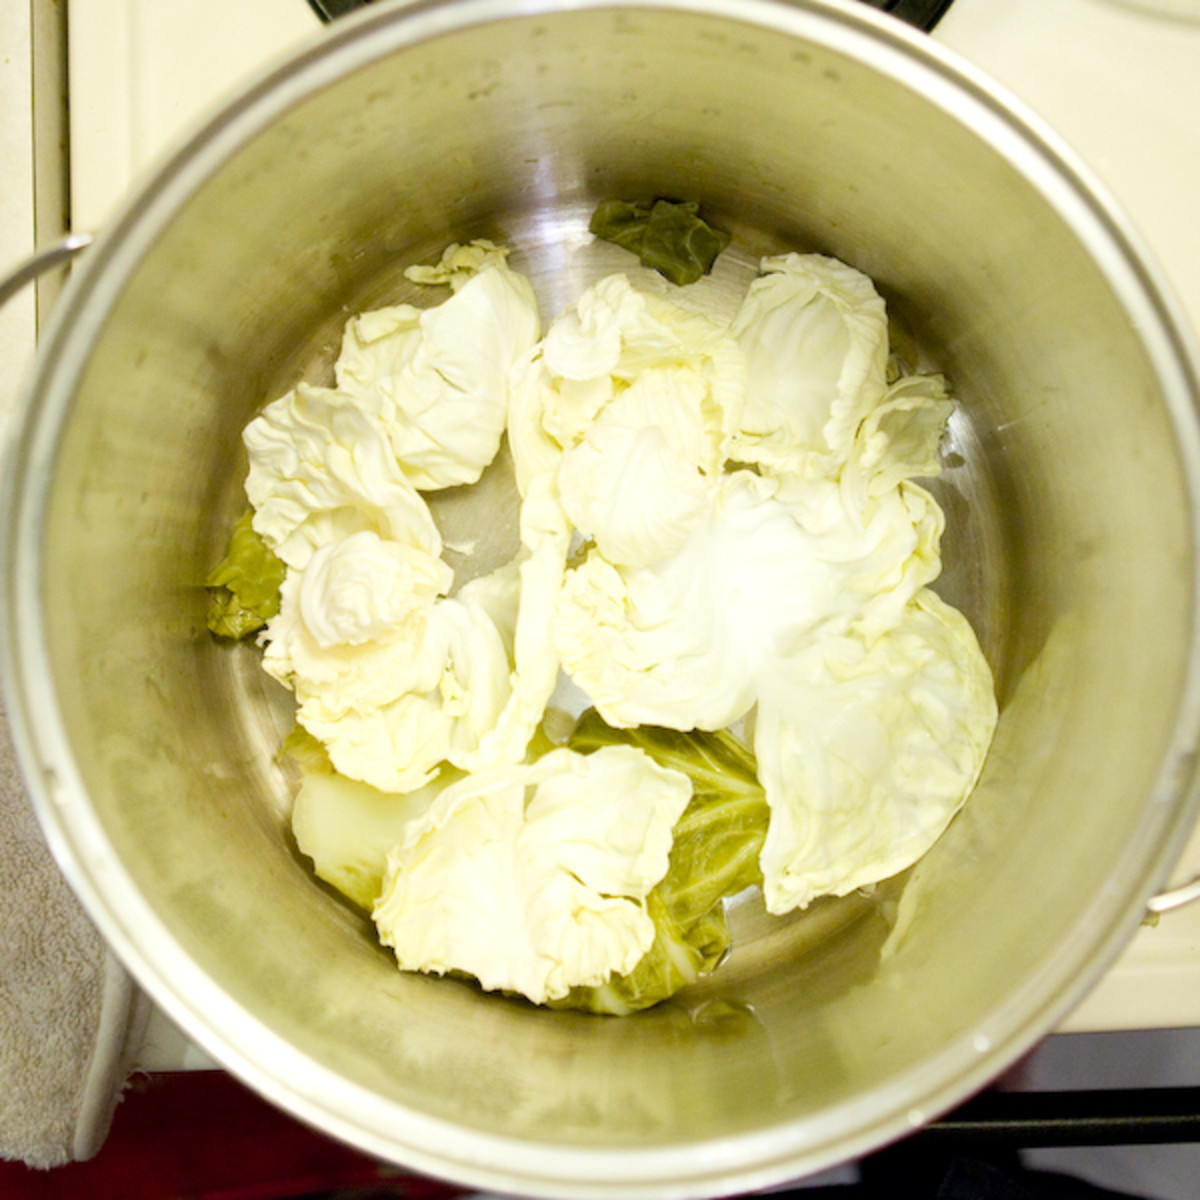 Place any broken cabbage leaves in the bottom of the pot